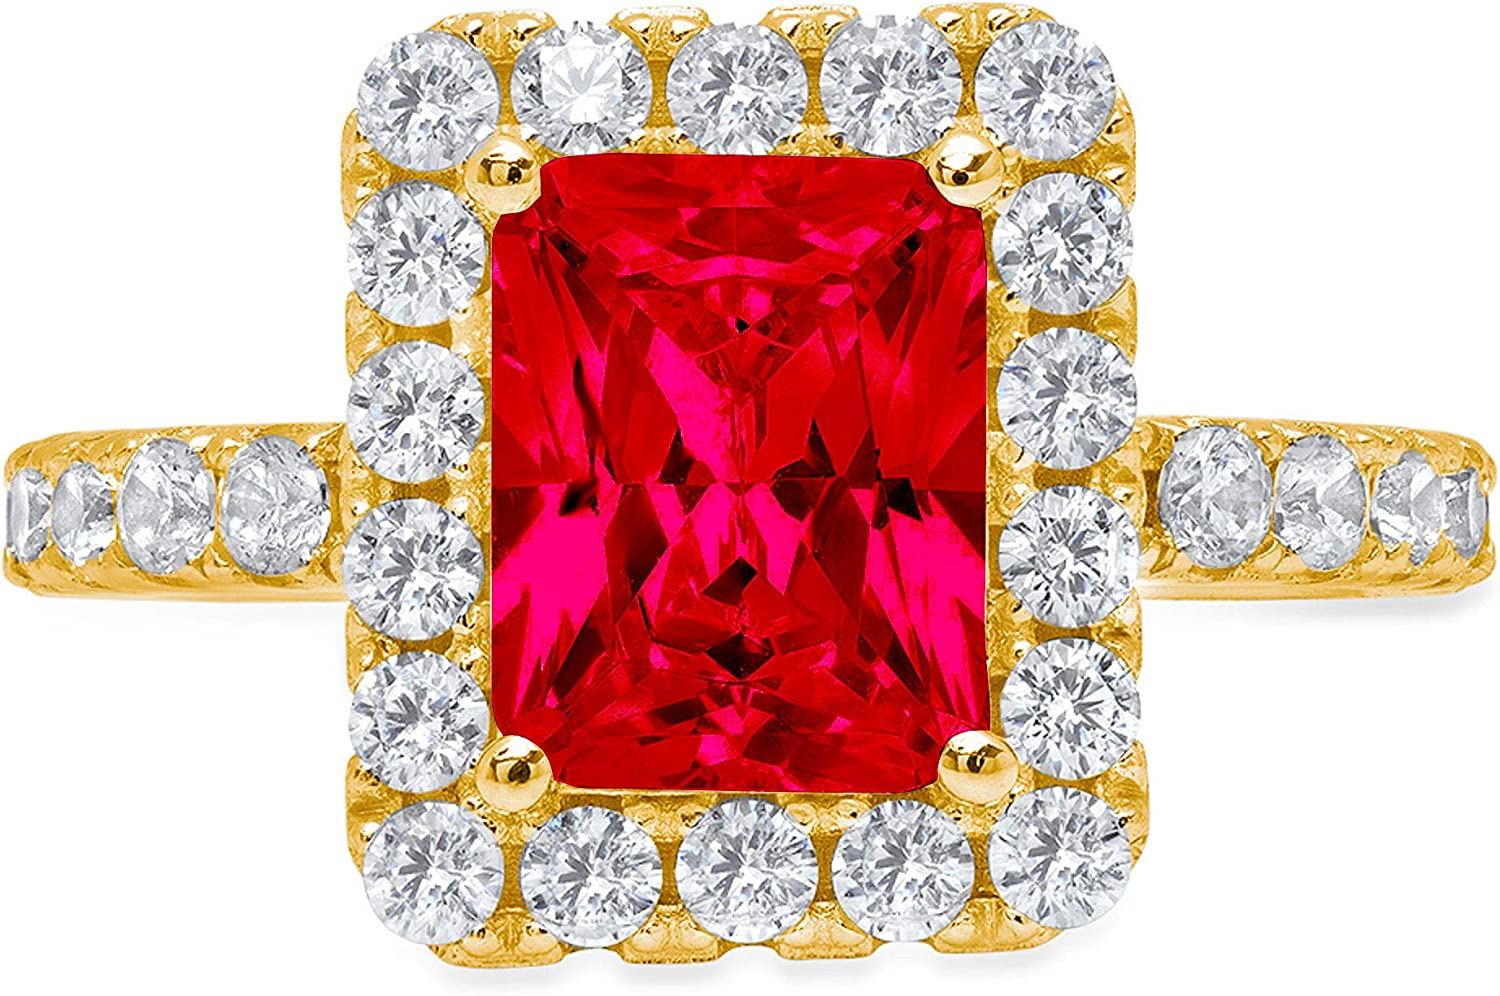 3.95 Brilliant Emerald Cut Solitaire with Accent Halo Stunning Genuine Flawless Simulated Pink Tourmaline Modern Promise Designer Ring 14k Yellow Gold